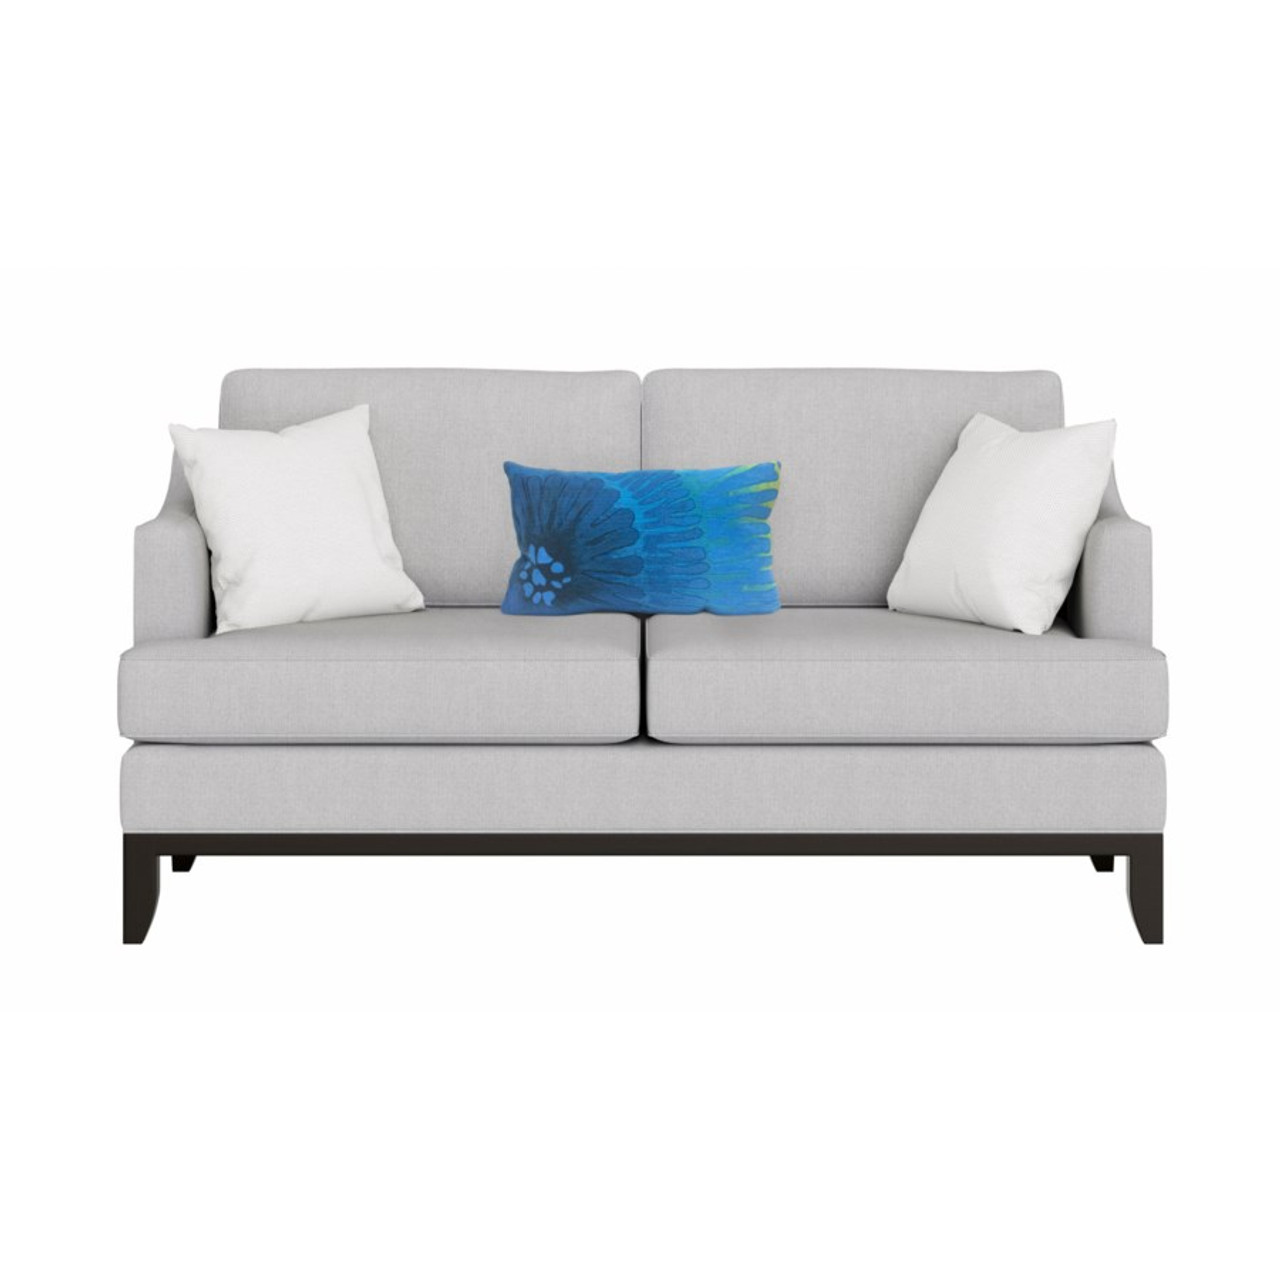 Visions Blue Cirque Caribe Indoor/Outdoor Throw Pillow  - Rectangle Lifestyle